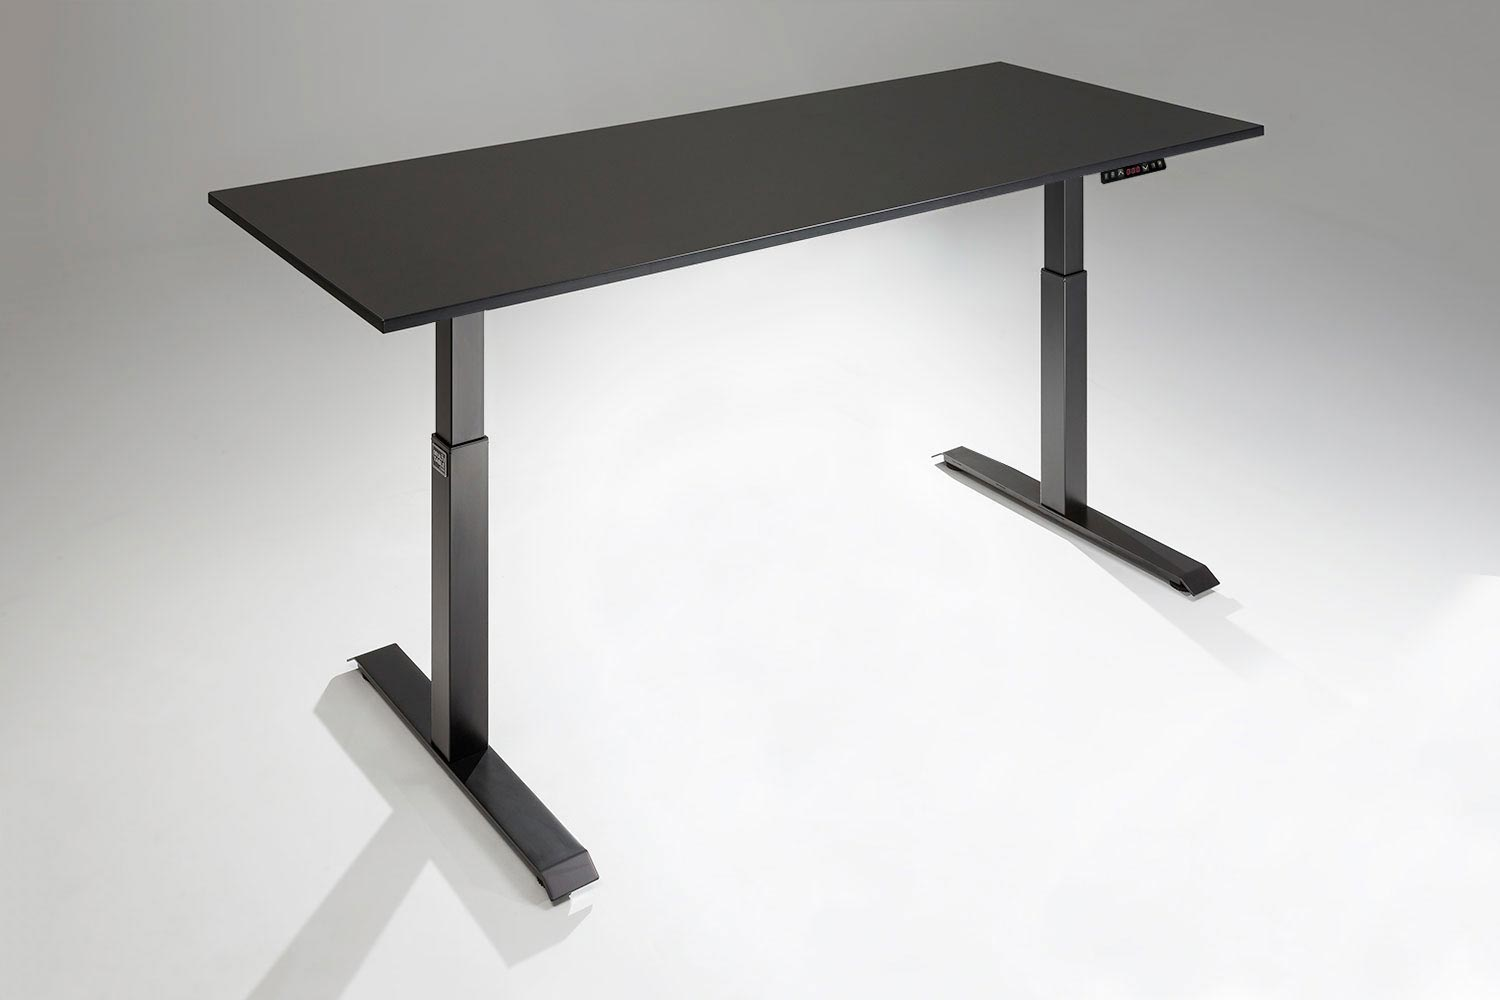 MultiTable Mod-E2 Electric Standing Desk Frame